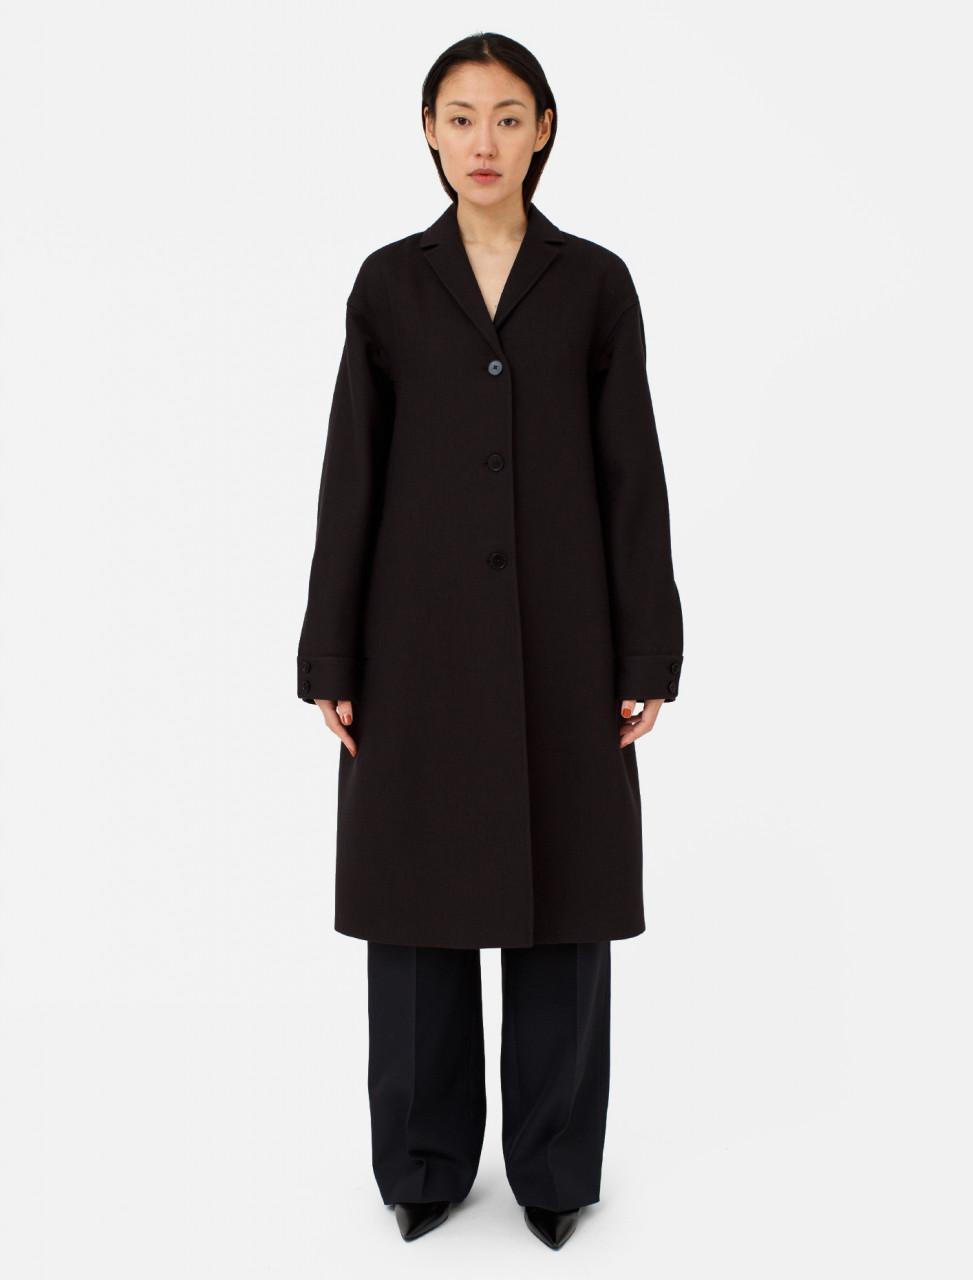 Jil Sander Doubleface Cotton Coat